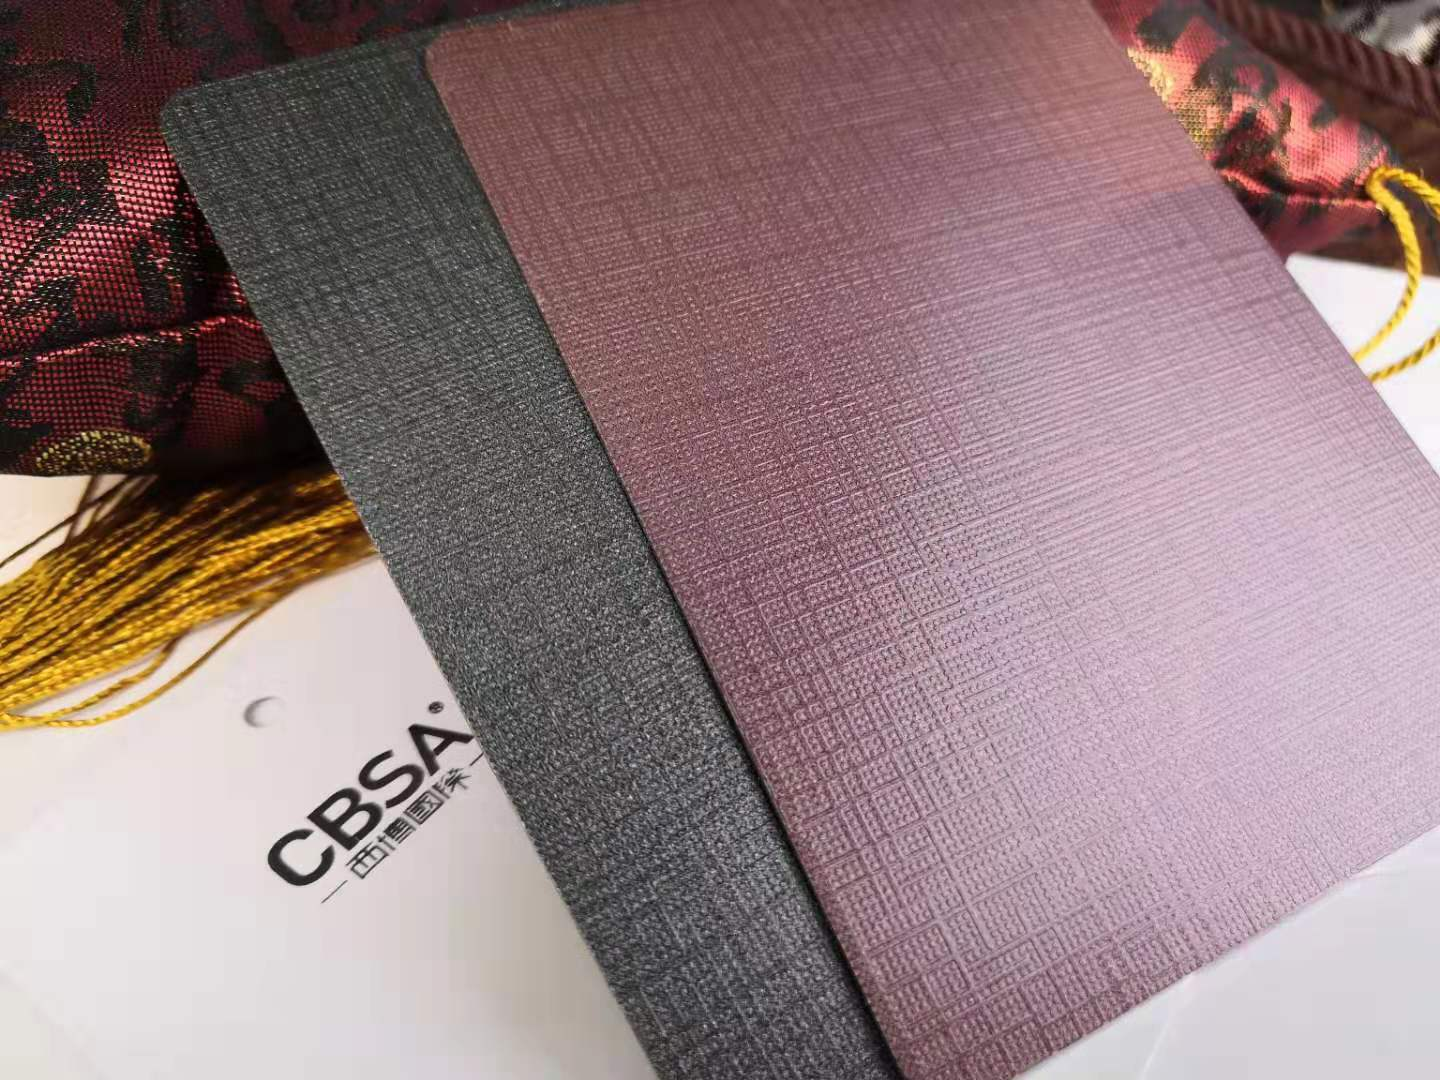 Colored stainless steel nano-baking paint sheet on the texture surface